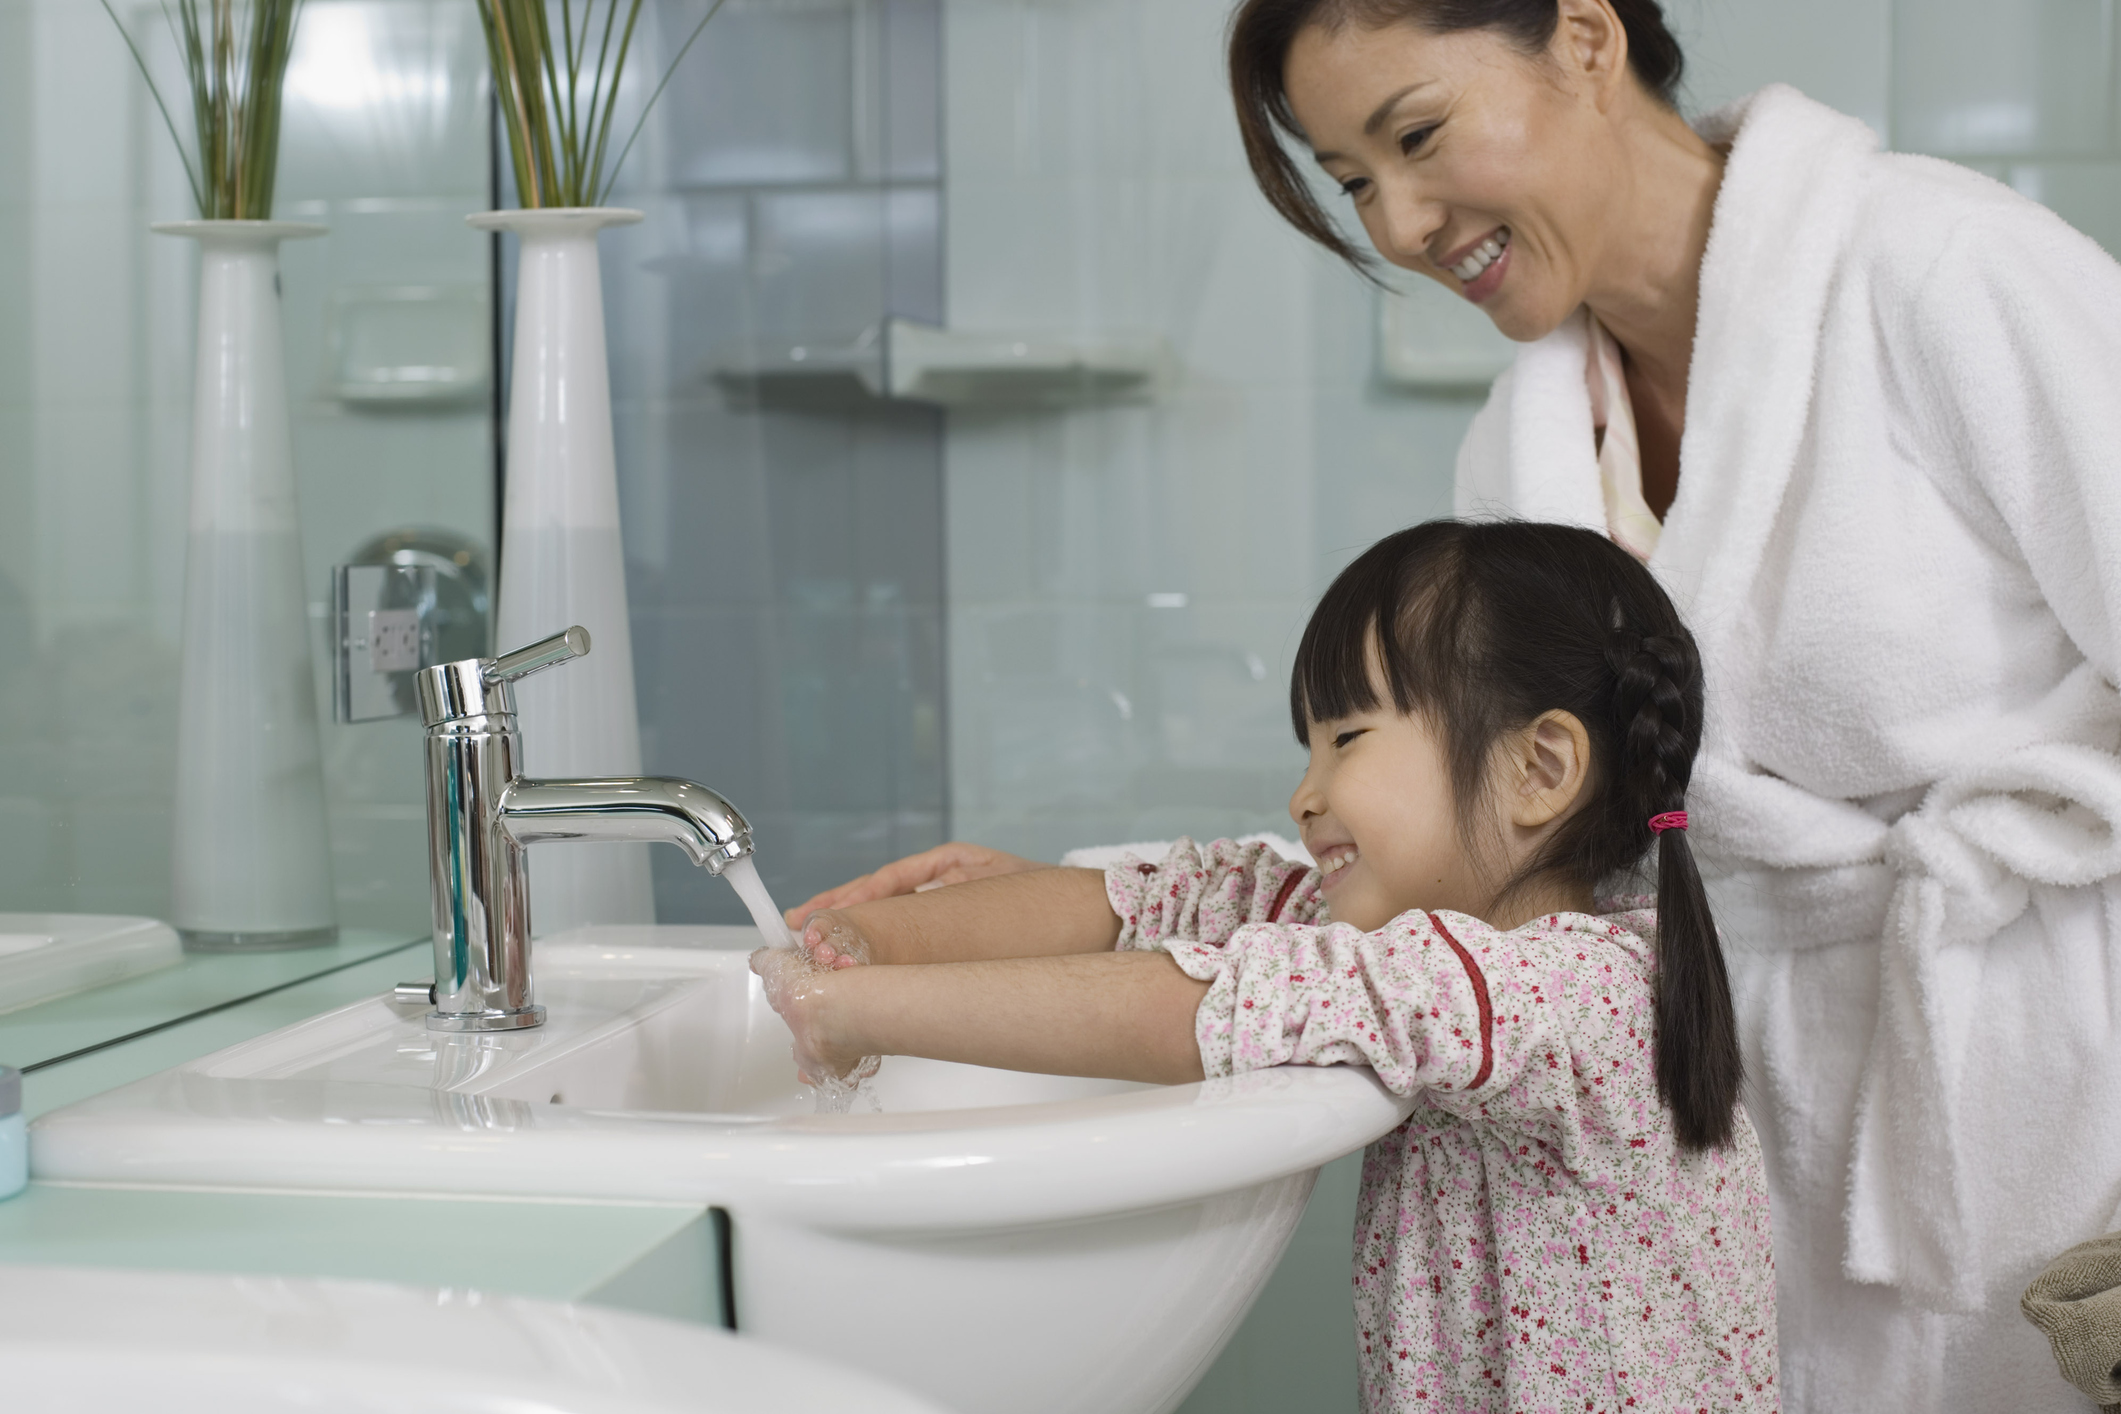 Heritage Toyota Owings Mills >> Heritage Toyota - 5 Natural Ways to Prevent Colds